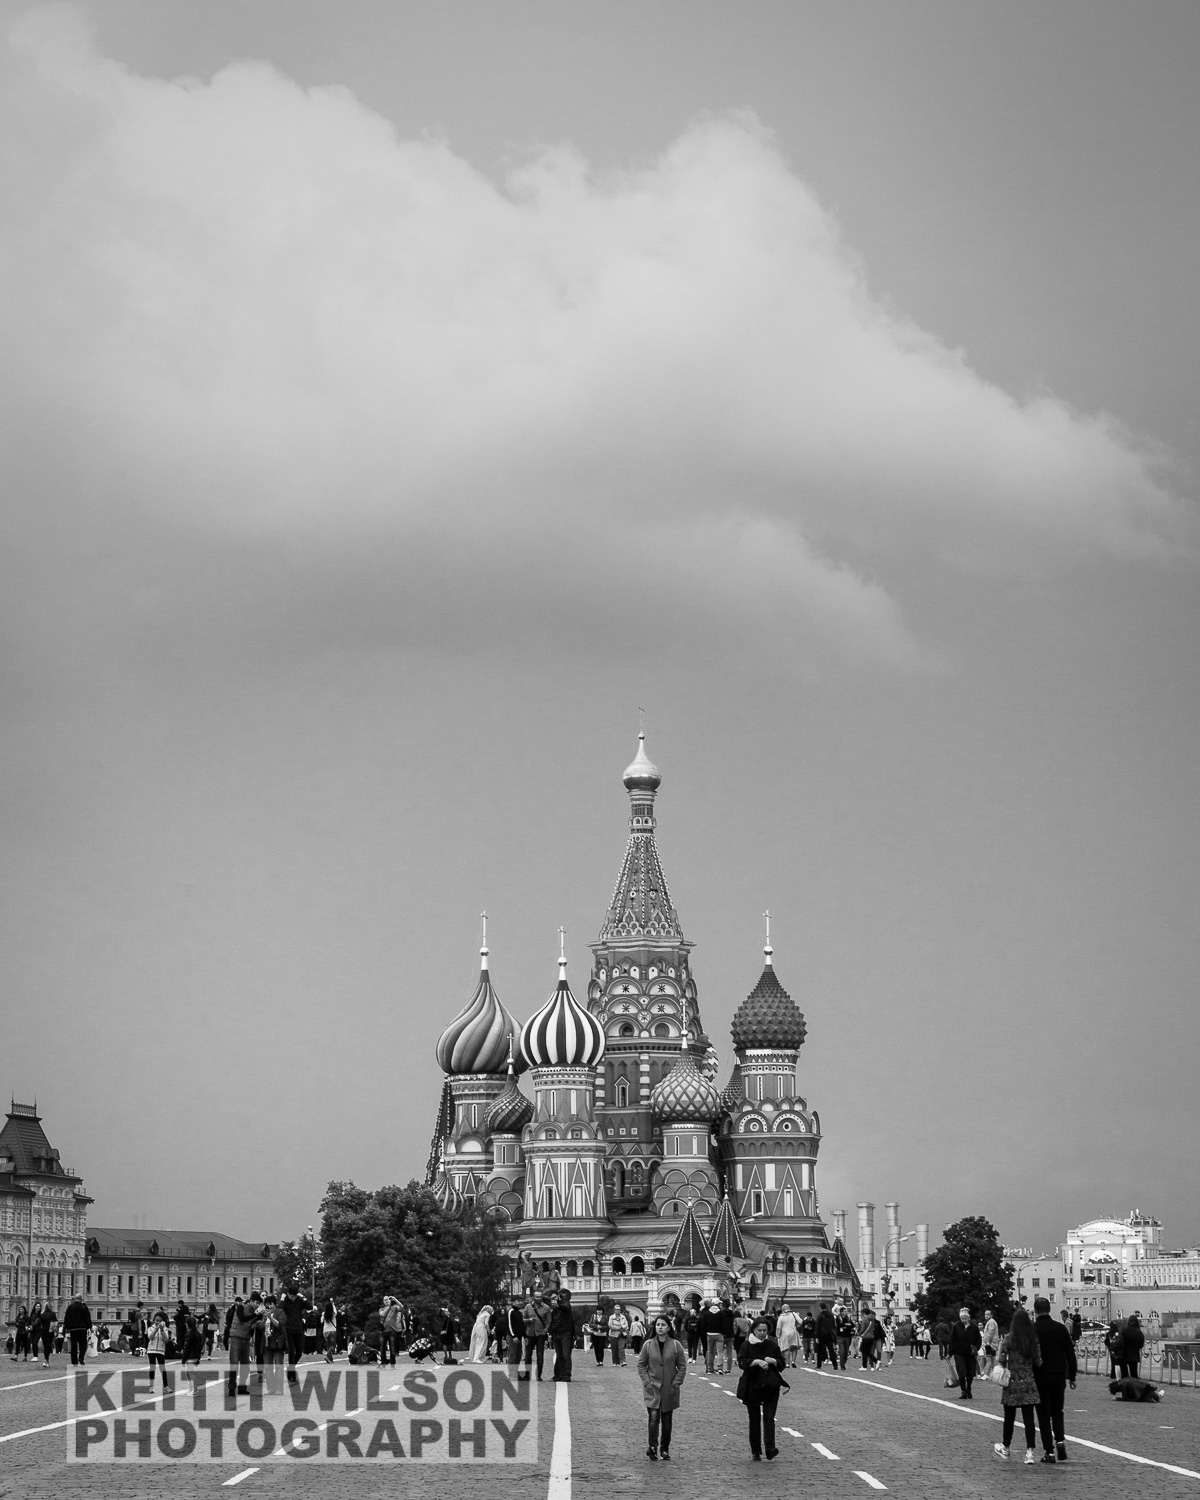 Red Square and Saint Basil's Cathedral just before a heavy rain shower